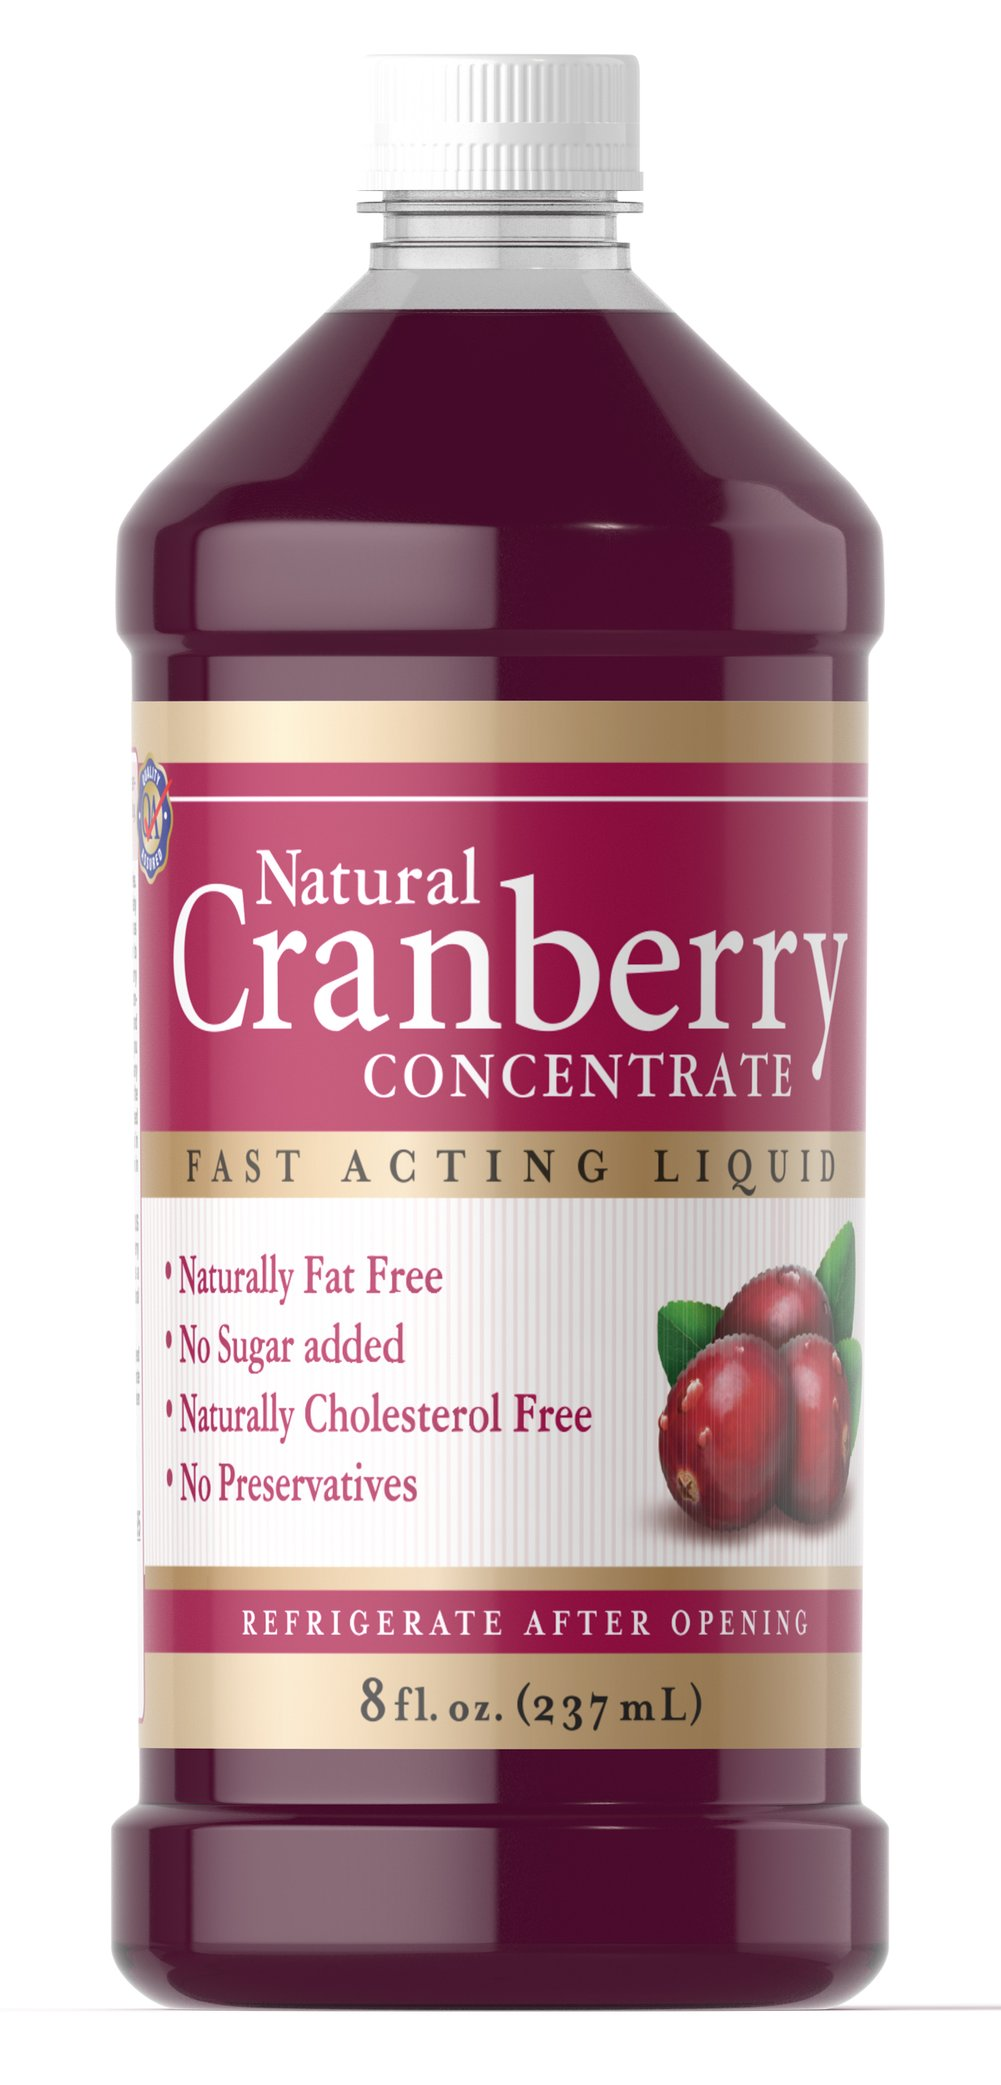 Natural Cranberry Concentrate <p>Our Natural Cranberry Concentrate Liquid is a liquid formula that is naturally free from fat, added sugar, cholesterol and preservatives.  Cranberry Concentrate Liquid gives you 100% natural cranberry concentrate without unnecessary additives or a cocktail taste.  In addition, there's the extra nutritional benefit of proanthocyanidins (condensed tannins) which have been identified in the cranberry fruit.</p>  8 oz Liquid  $18.49